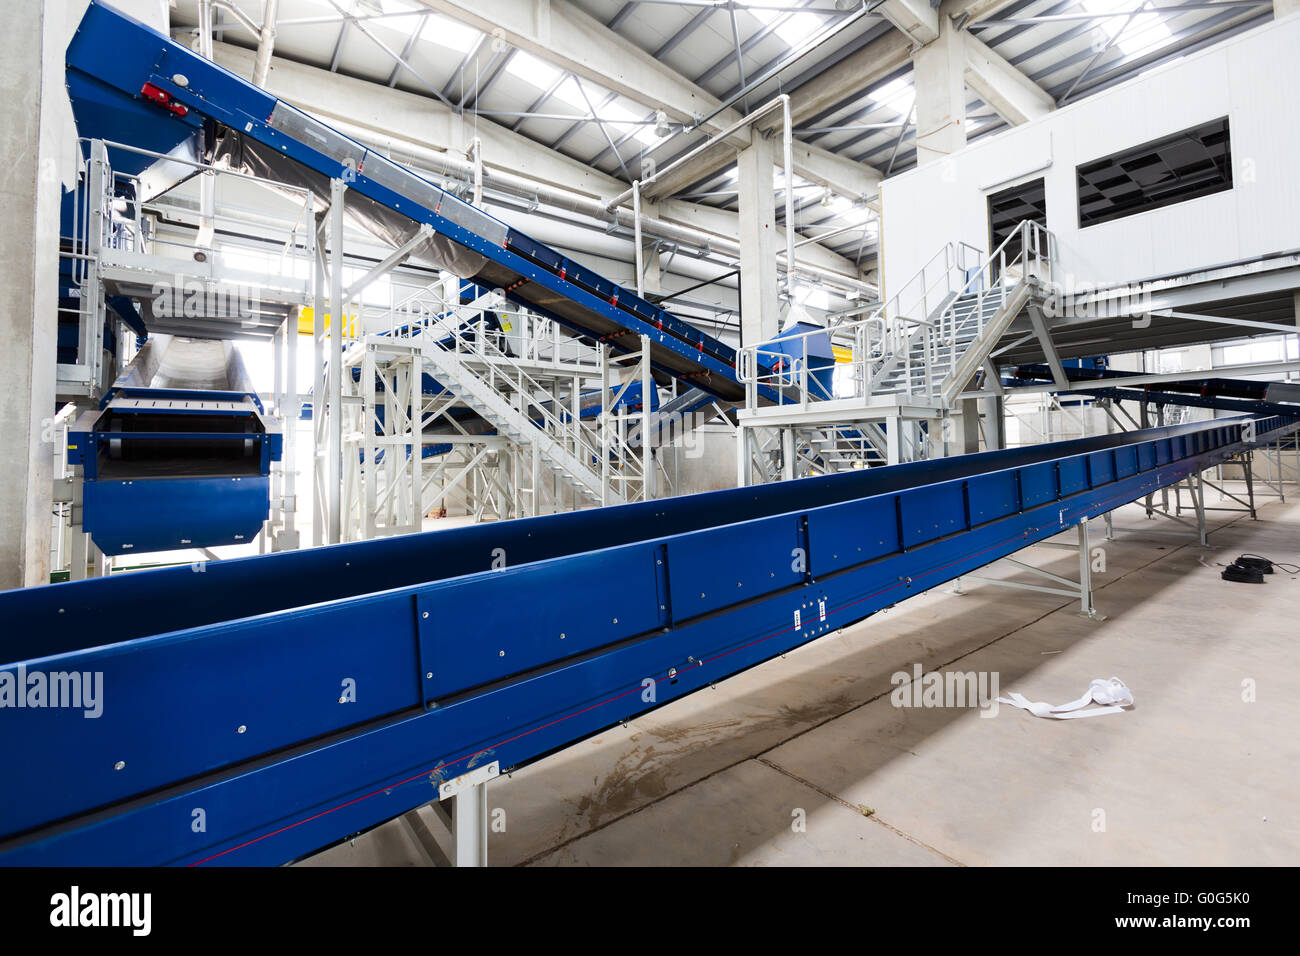 Waste plant inside process storage methane oil organic - Stock Image